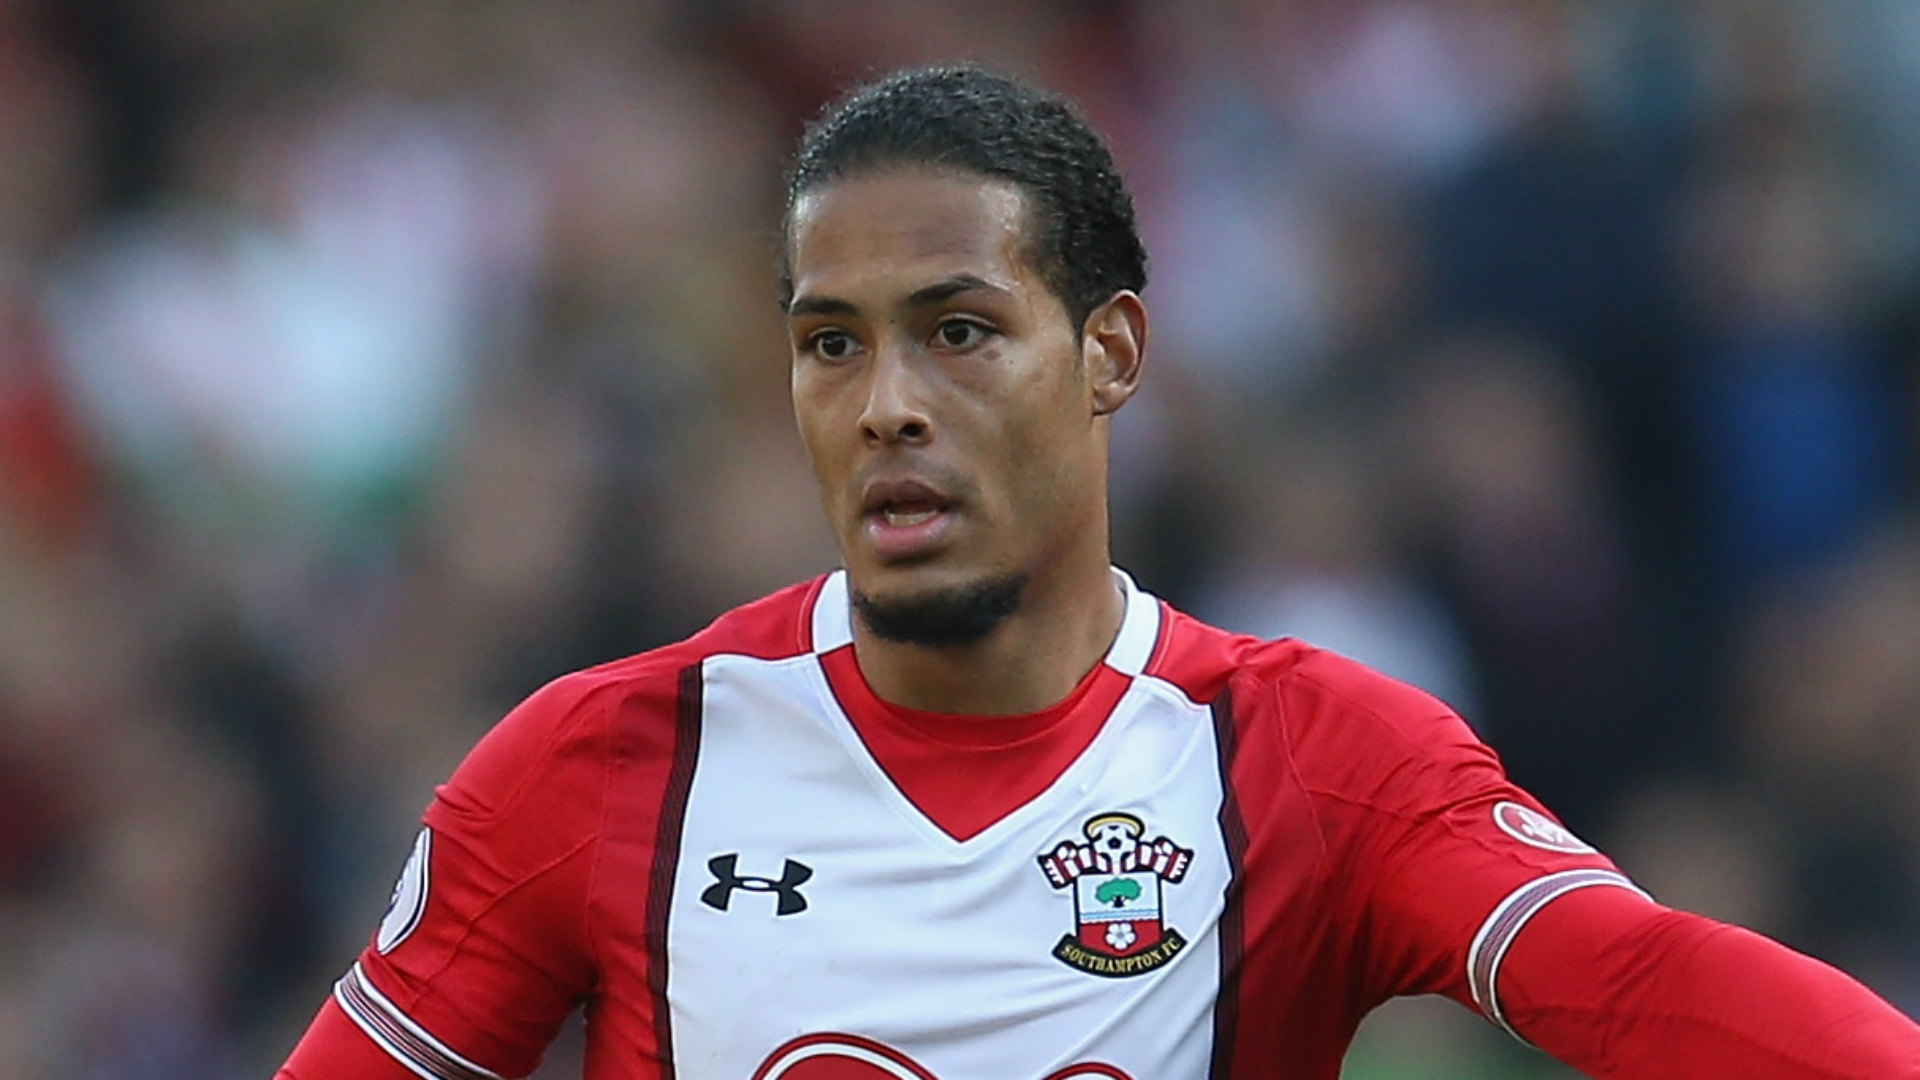 Celtic should hope for Virgil van Dijk transfer in January